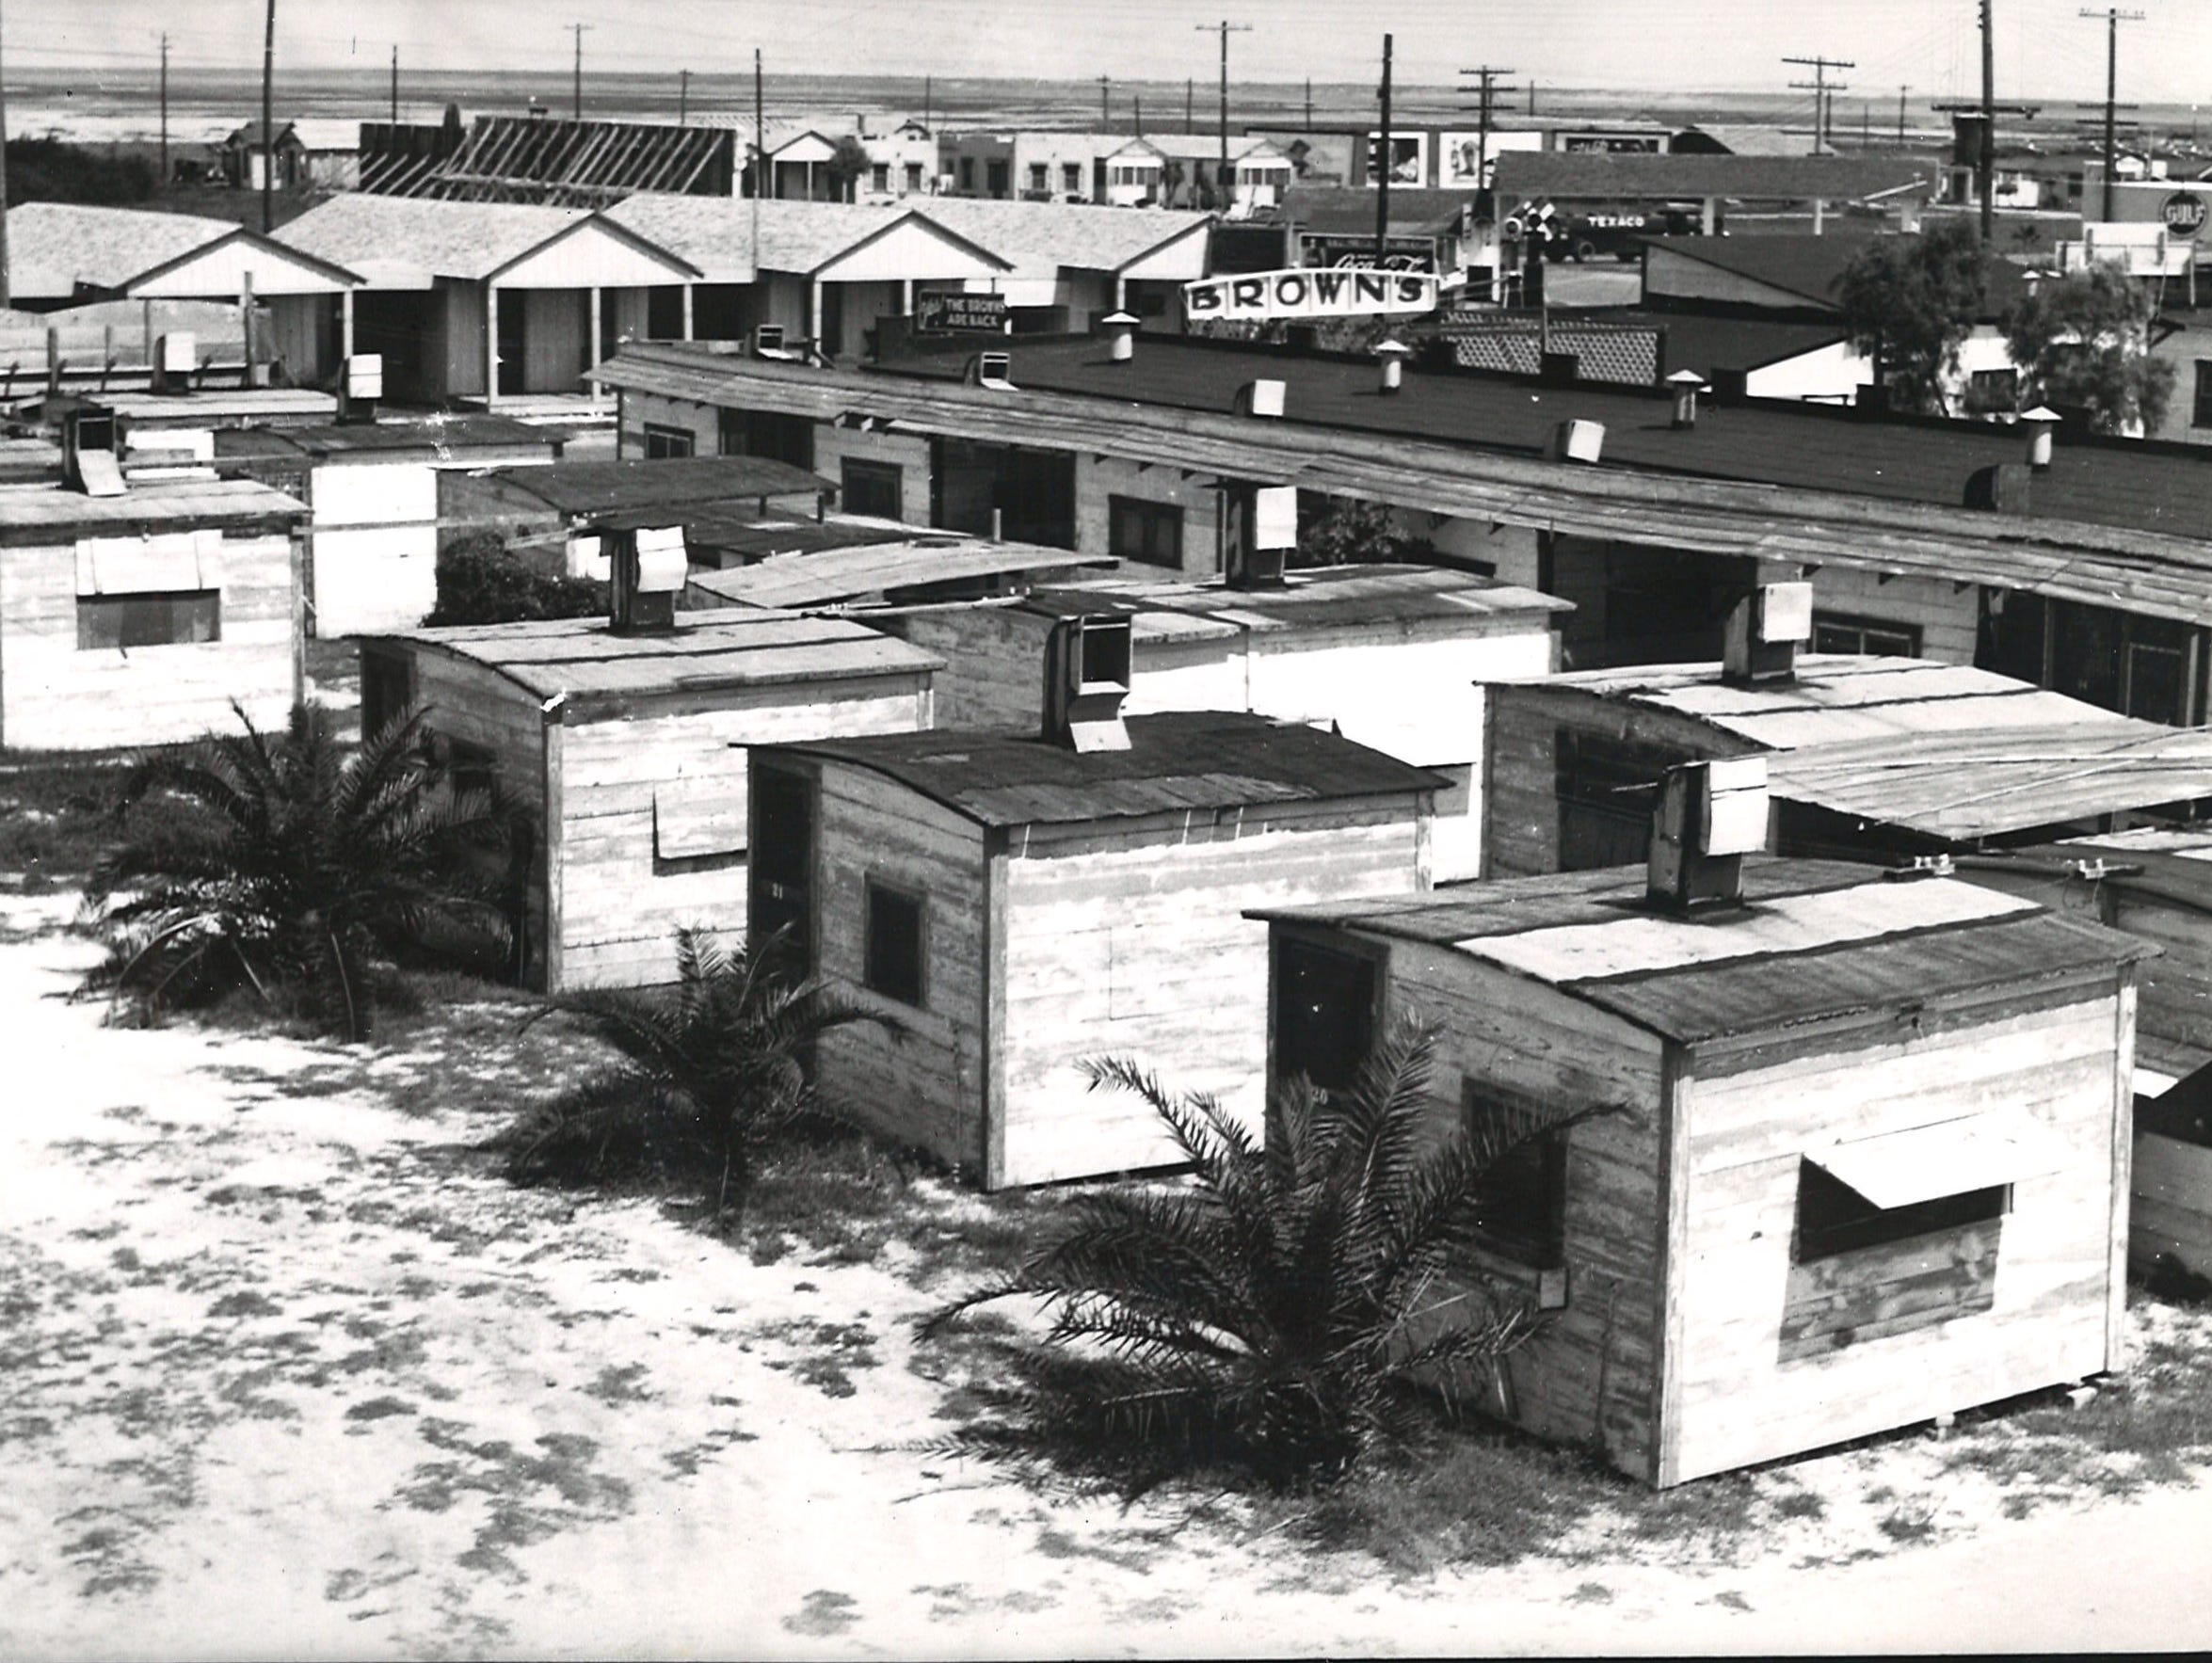 The Belknap Camp on Corpus Christi's North Beach on Aug. 12, 1934. Photo by Doc McGregor.